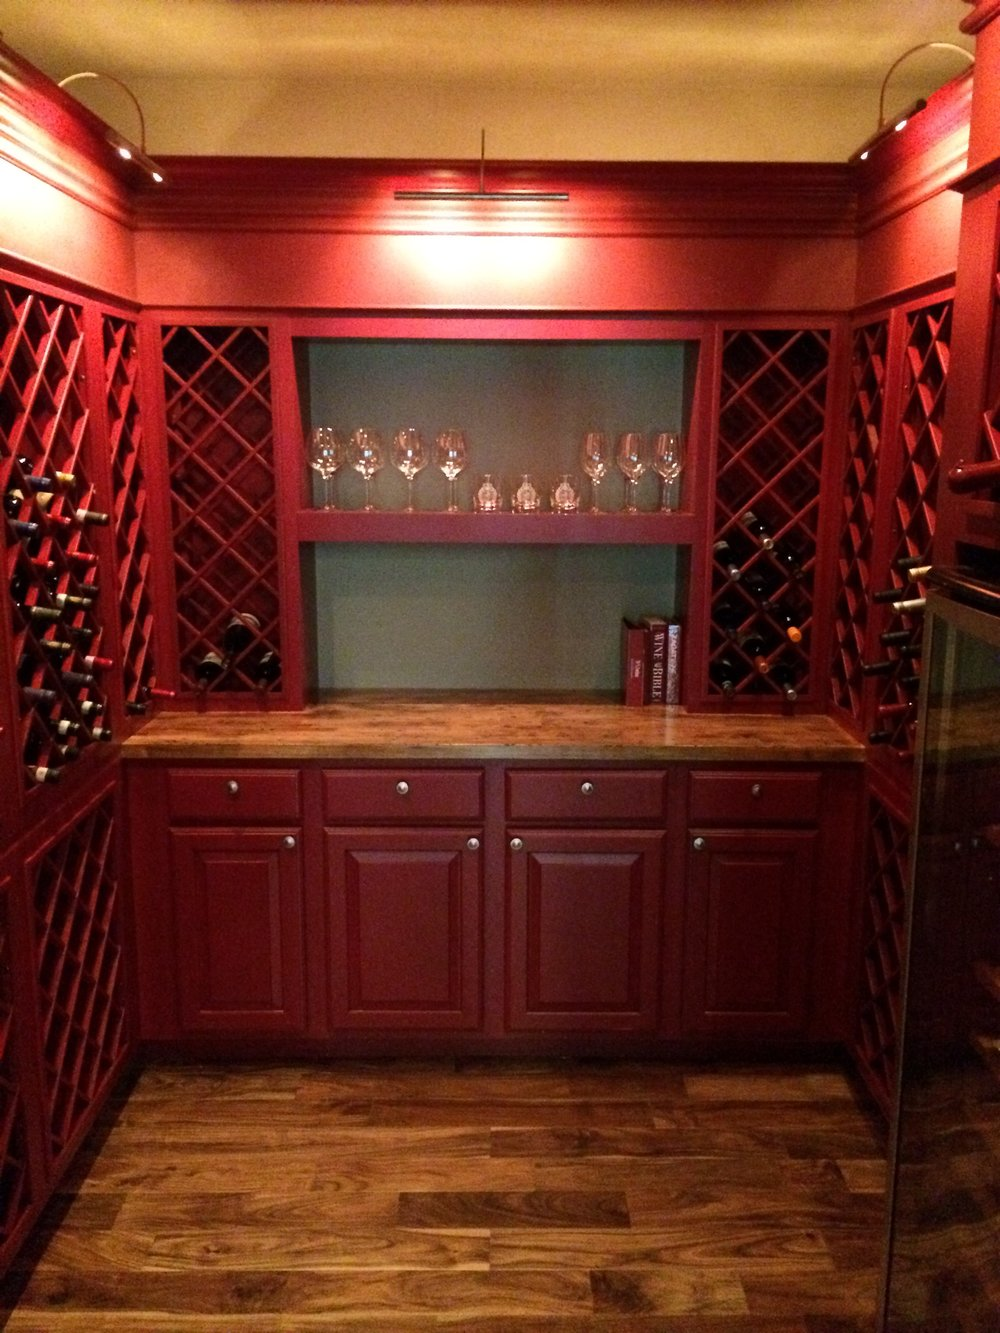 Wine Cellar turned out truly amazing. Room for a wine fridge, pouring and prep area and plenty of storage! Time to get filling it up! LED library lights keep the temps cool while patrons make their wine selections and automatically shut off when leaving the room.